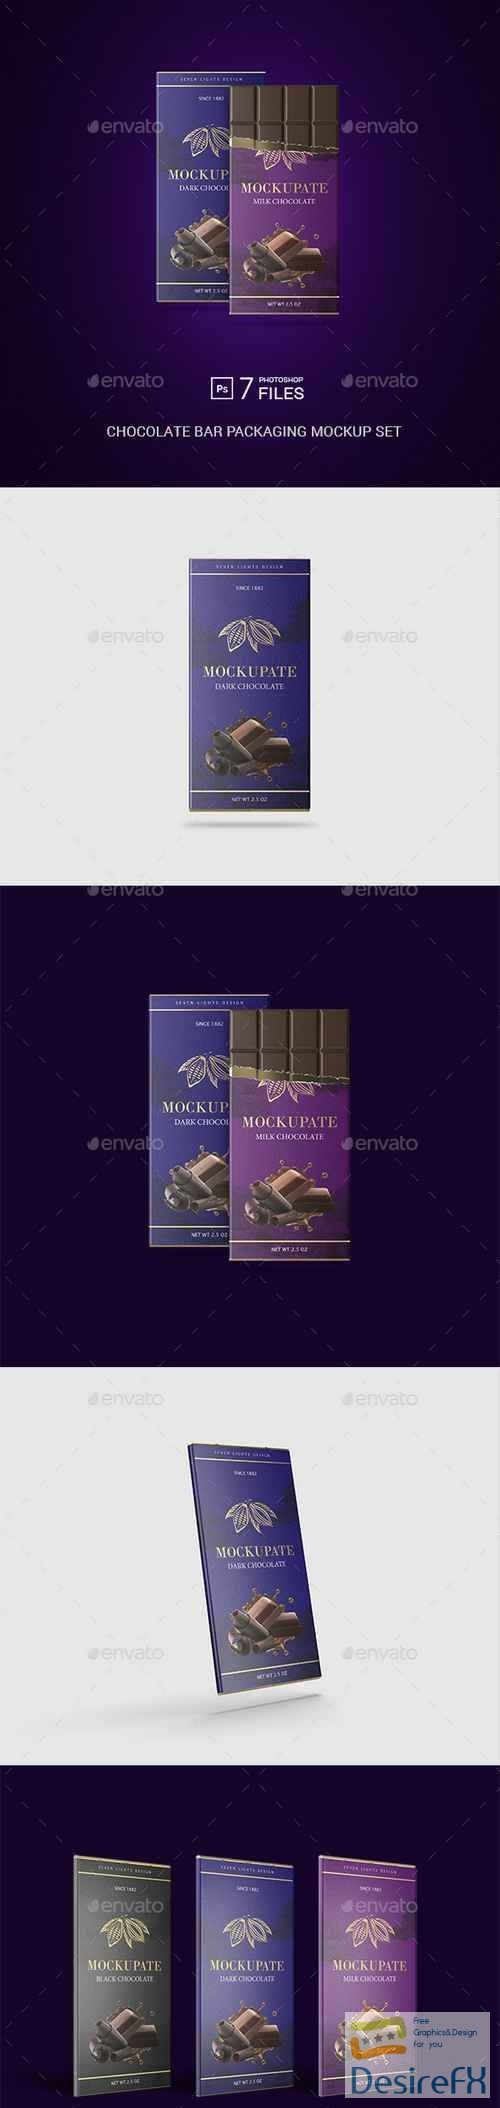 mock-up - Chocolate Bar Packaging Mockup 22613172